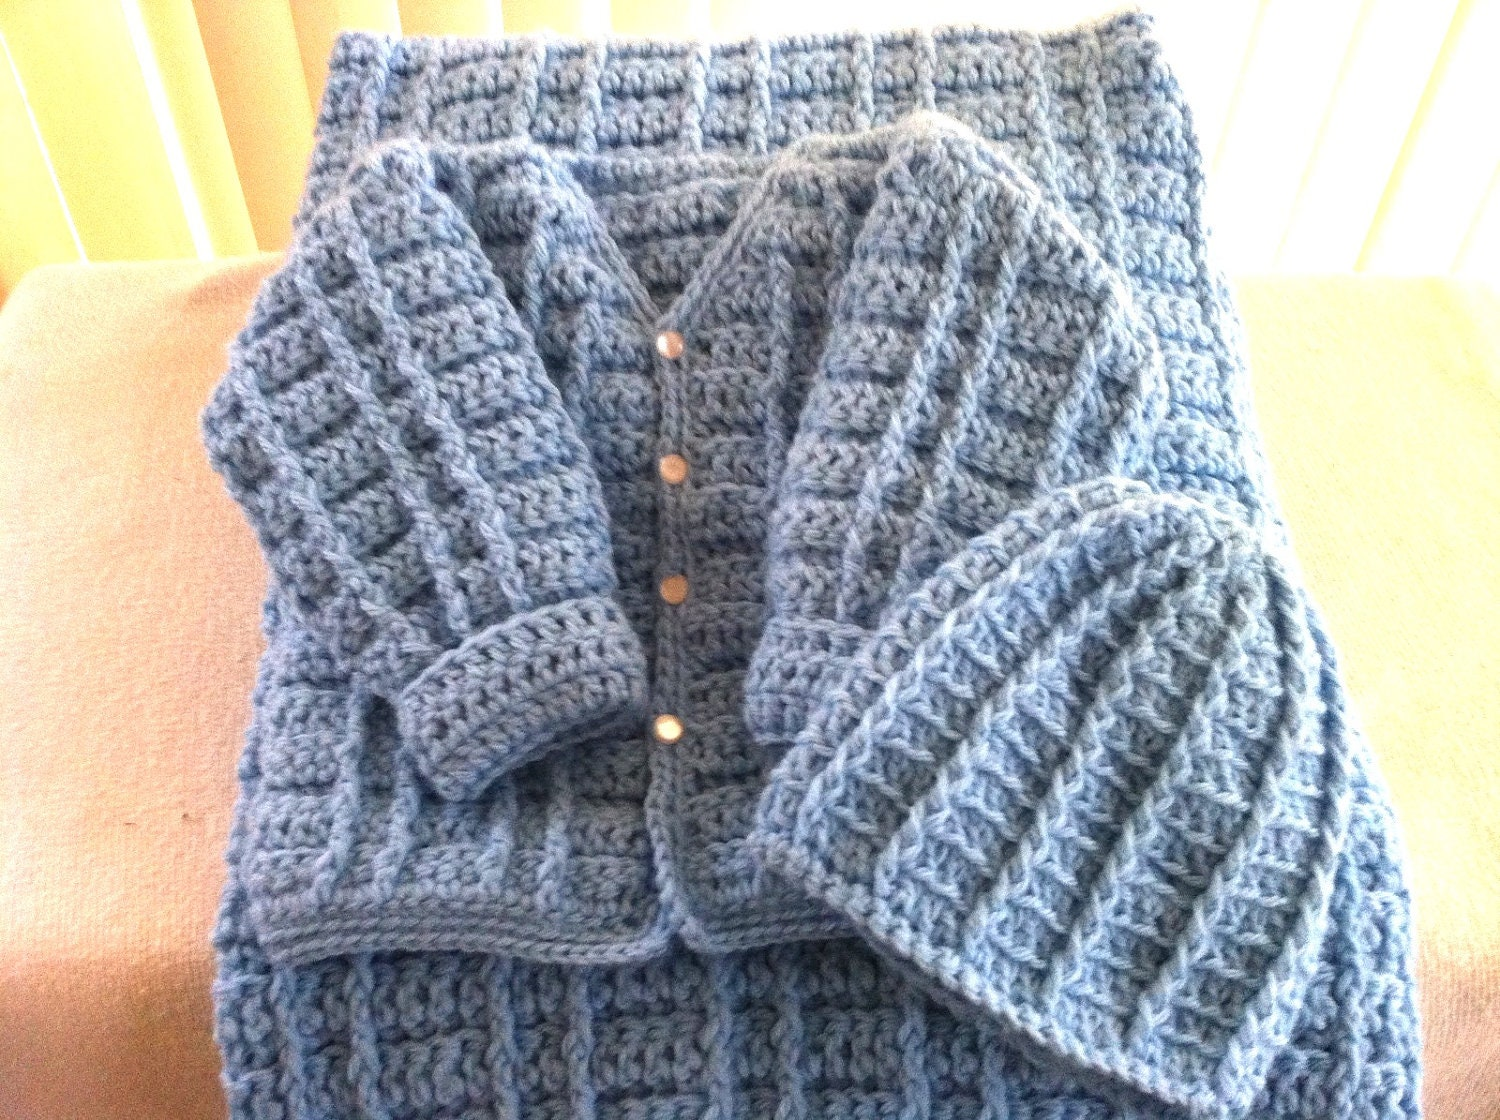 Crochet Baby Boy Sweater Free Patterns : Crochet Baby Boy Sweater Set with Cap and Blanket by ...